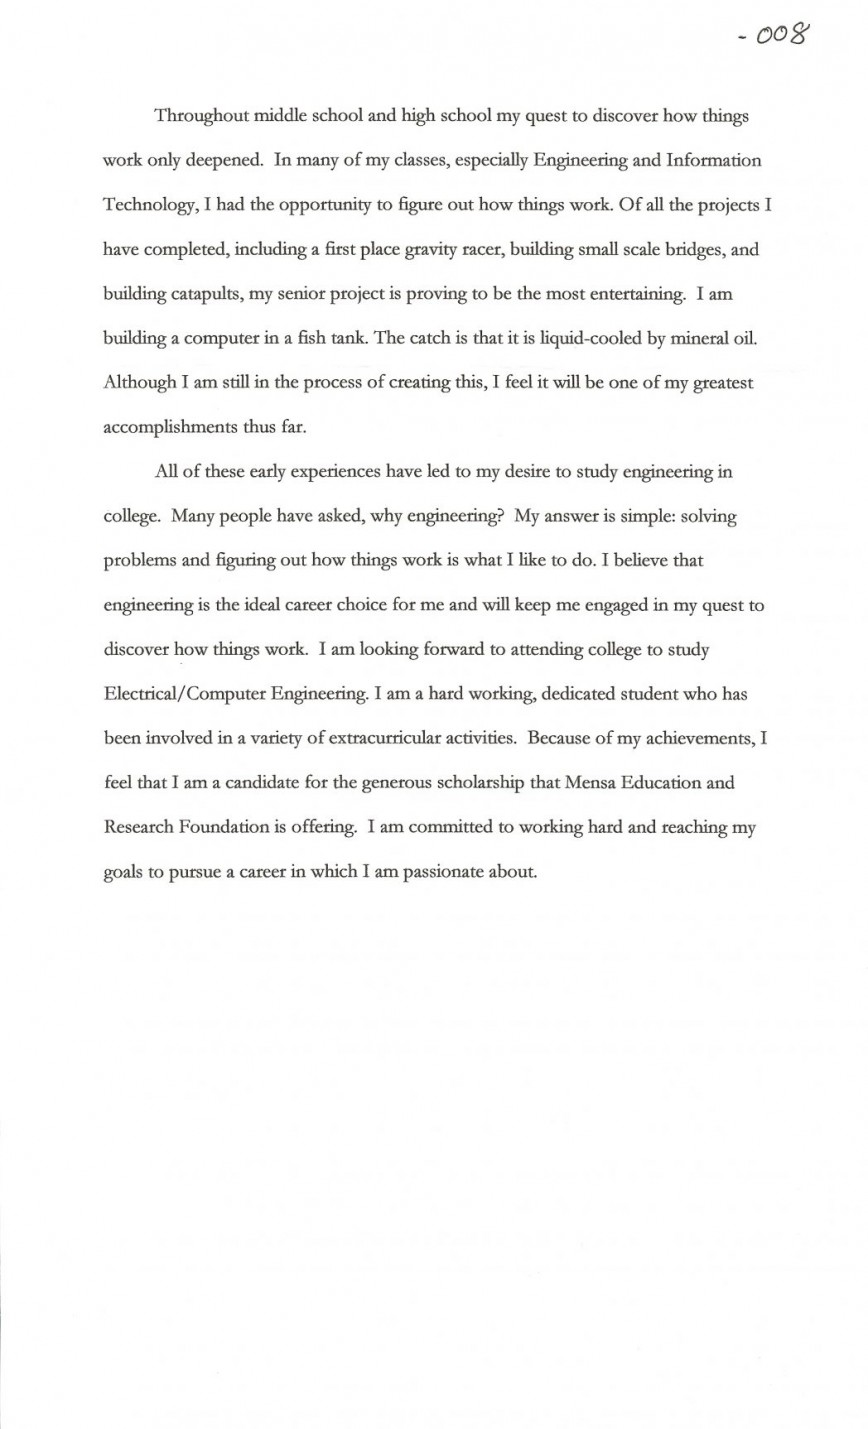 014 Sample Essay For Scholarship Scholarships Cover Letter Contests High School Juniors Joshua Cate No 1048x1726 Incredible Why I Deserve The Chevening